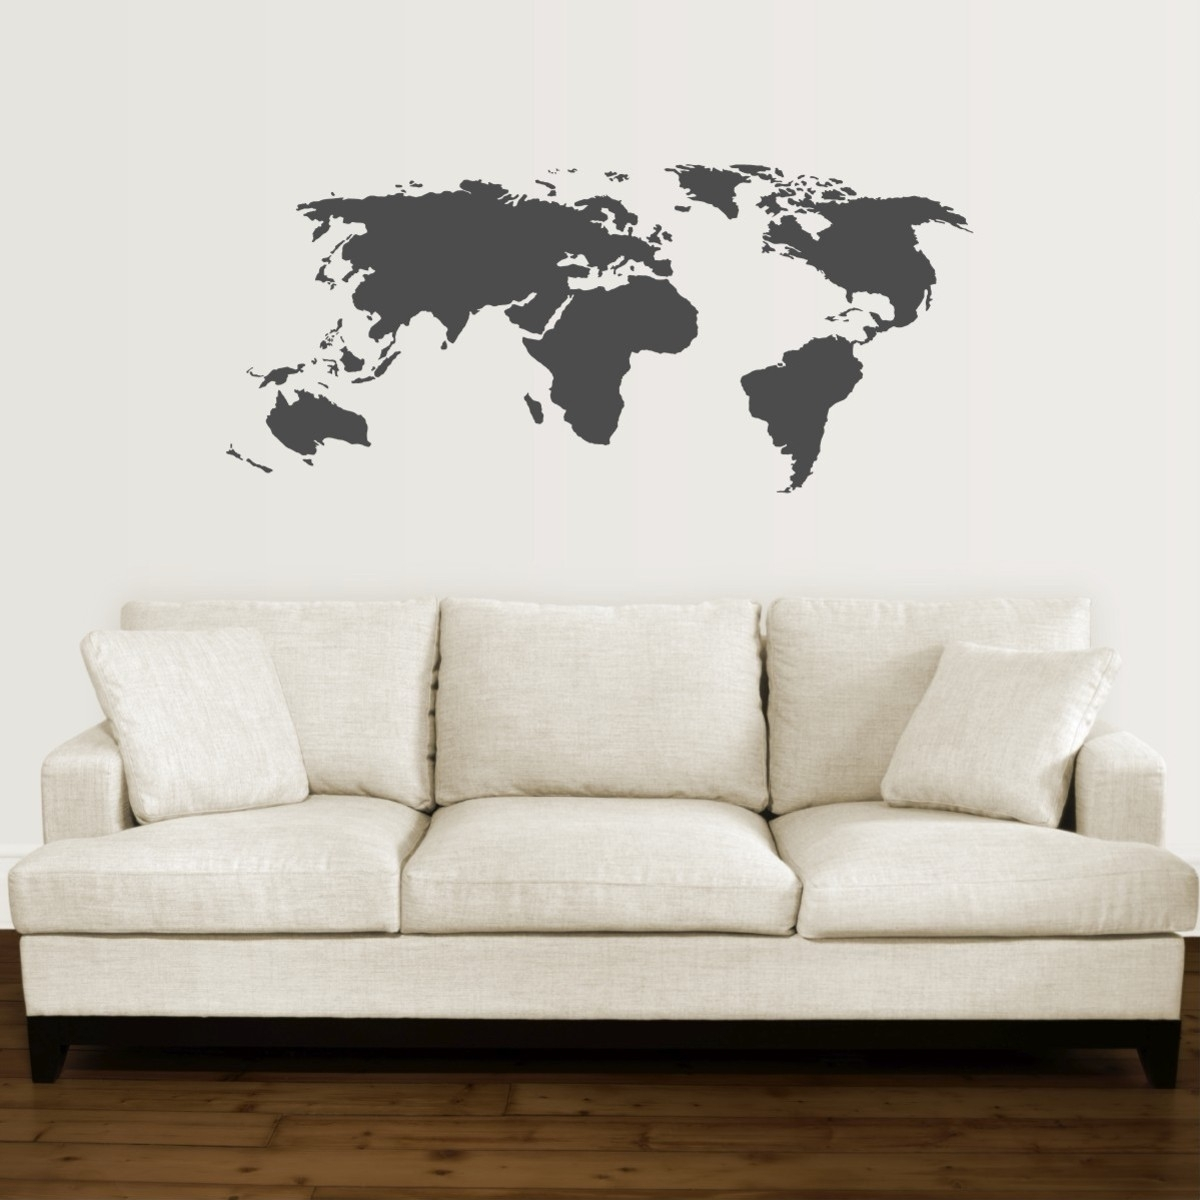 Current World Map For Wall Art For 17 Cool Ideas For World Map Wall Art – Live Diy Ideas (View 5 of 15)